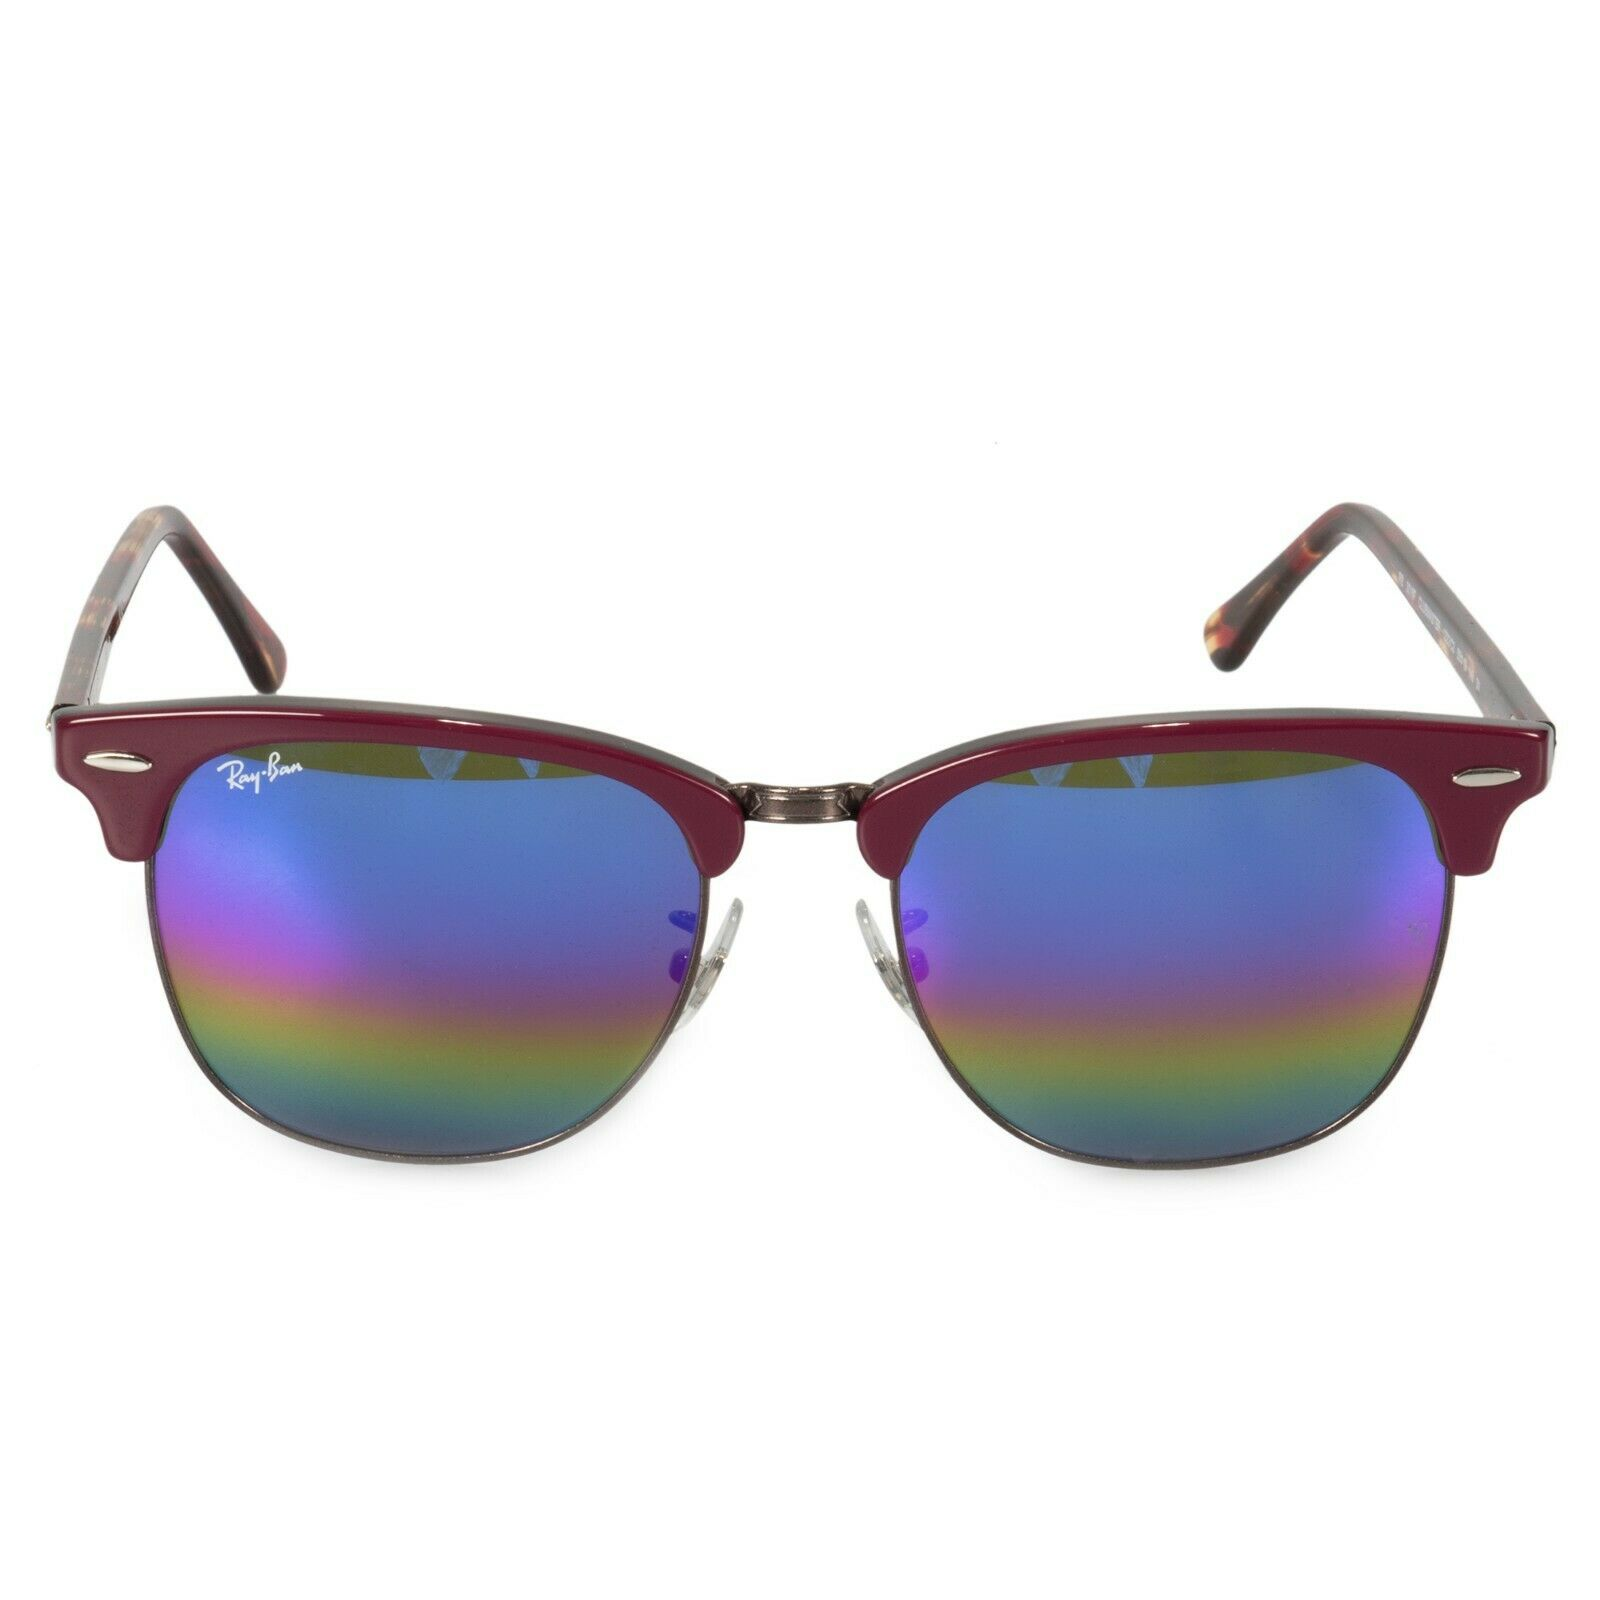 a7c20b7aa4 Ray Ban Clubmaster Mineral Rainbow Flash Icons Square Sunglasses ...